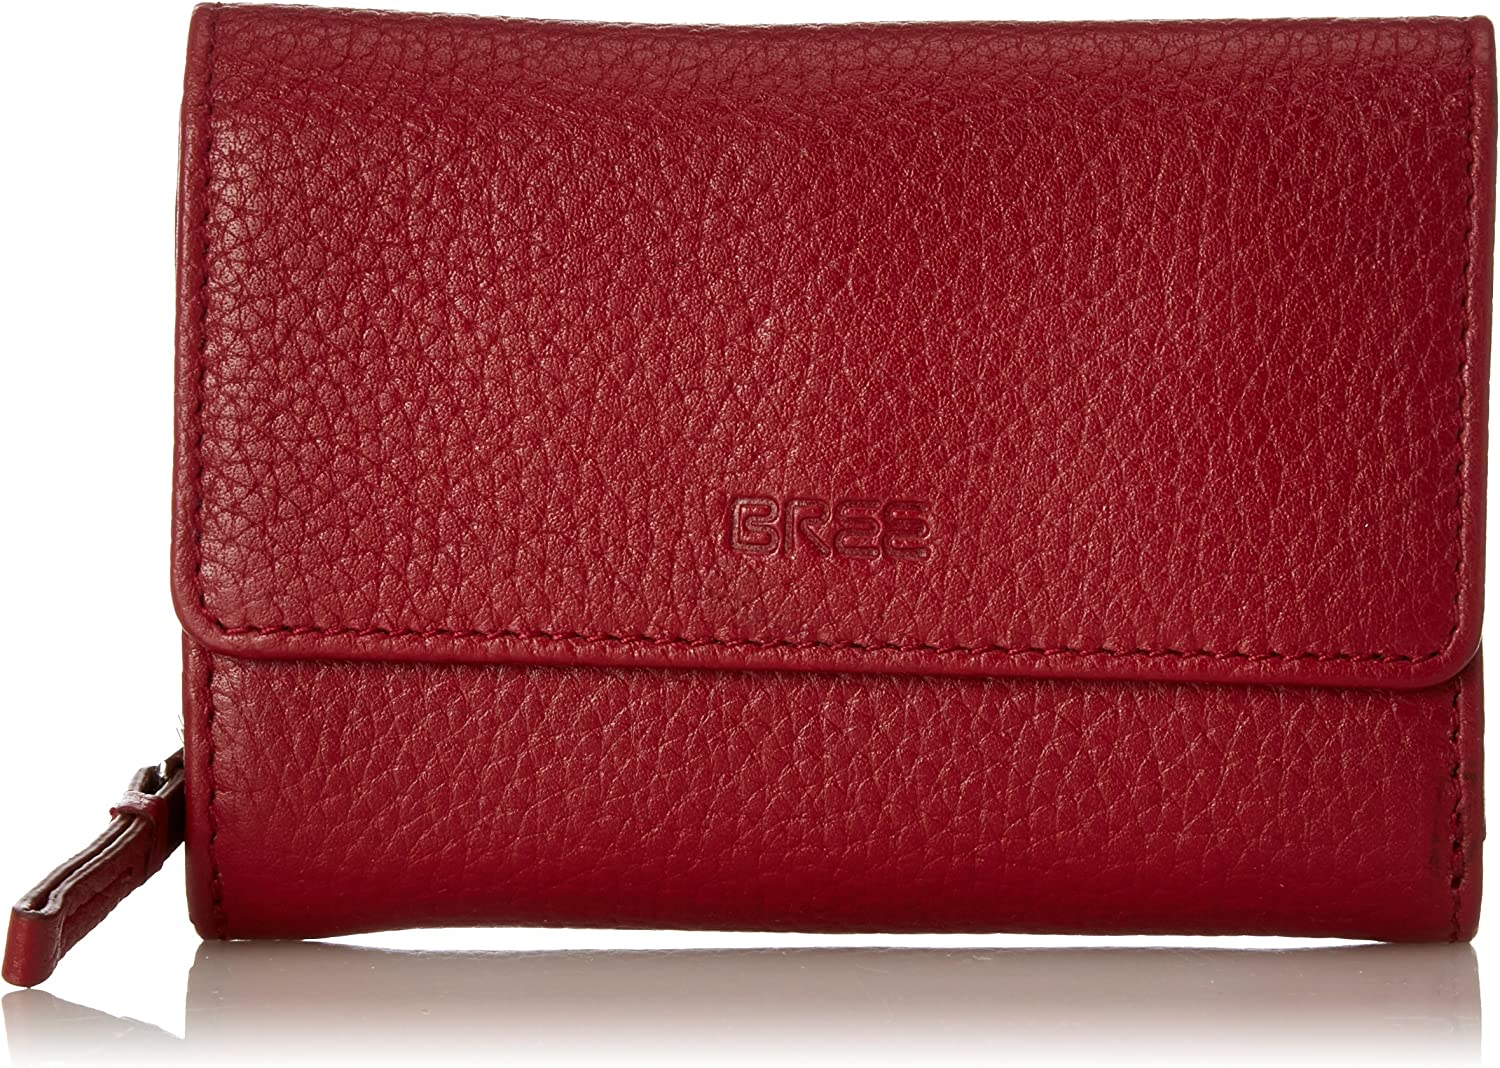 BREE Liv 108, Brick Red, Zipped Combi. Purse, Women's Wallet, red (Brick Red), 2x11.5x13 cm (B x H T)